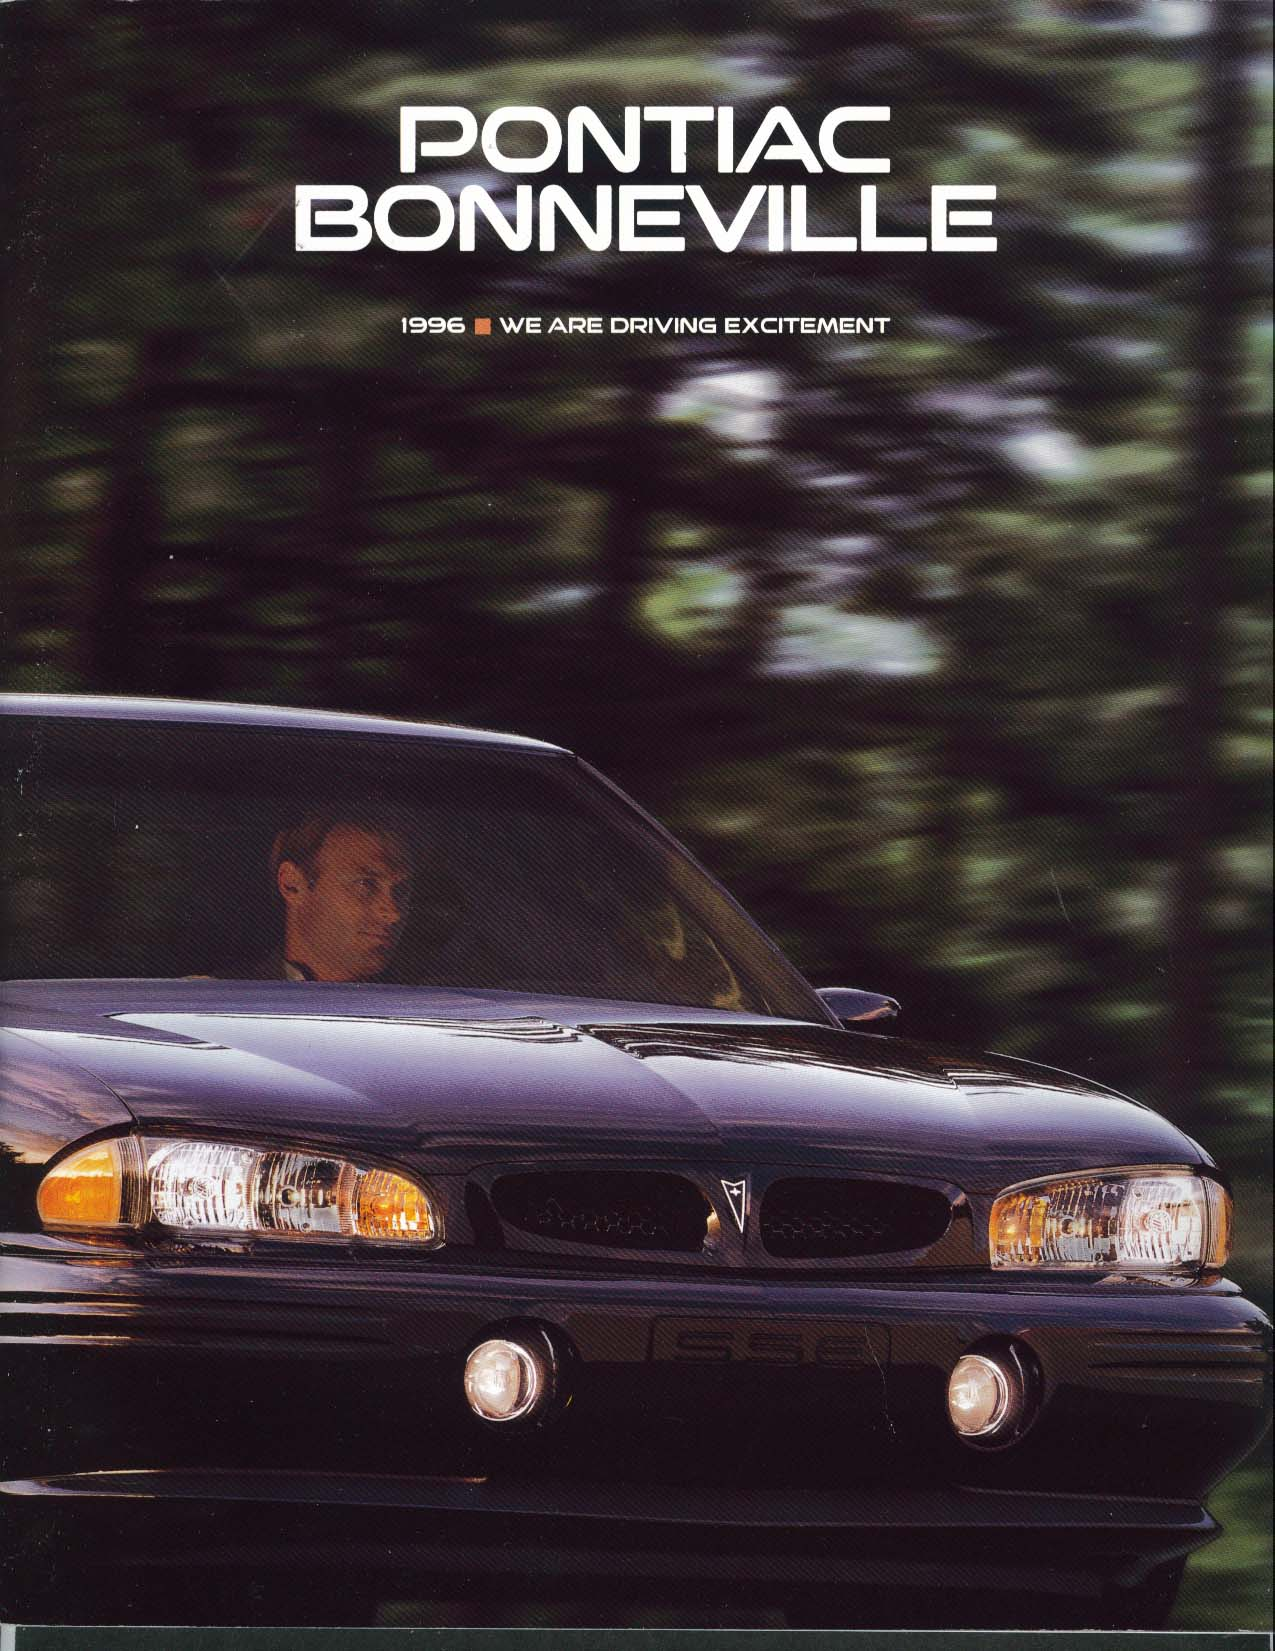 Image for Pontiac Bonneville 1996 sales brochure Olympic Sponsor